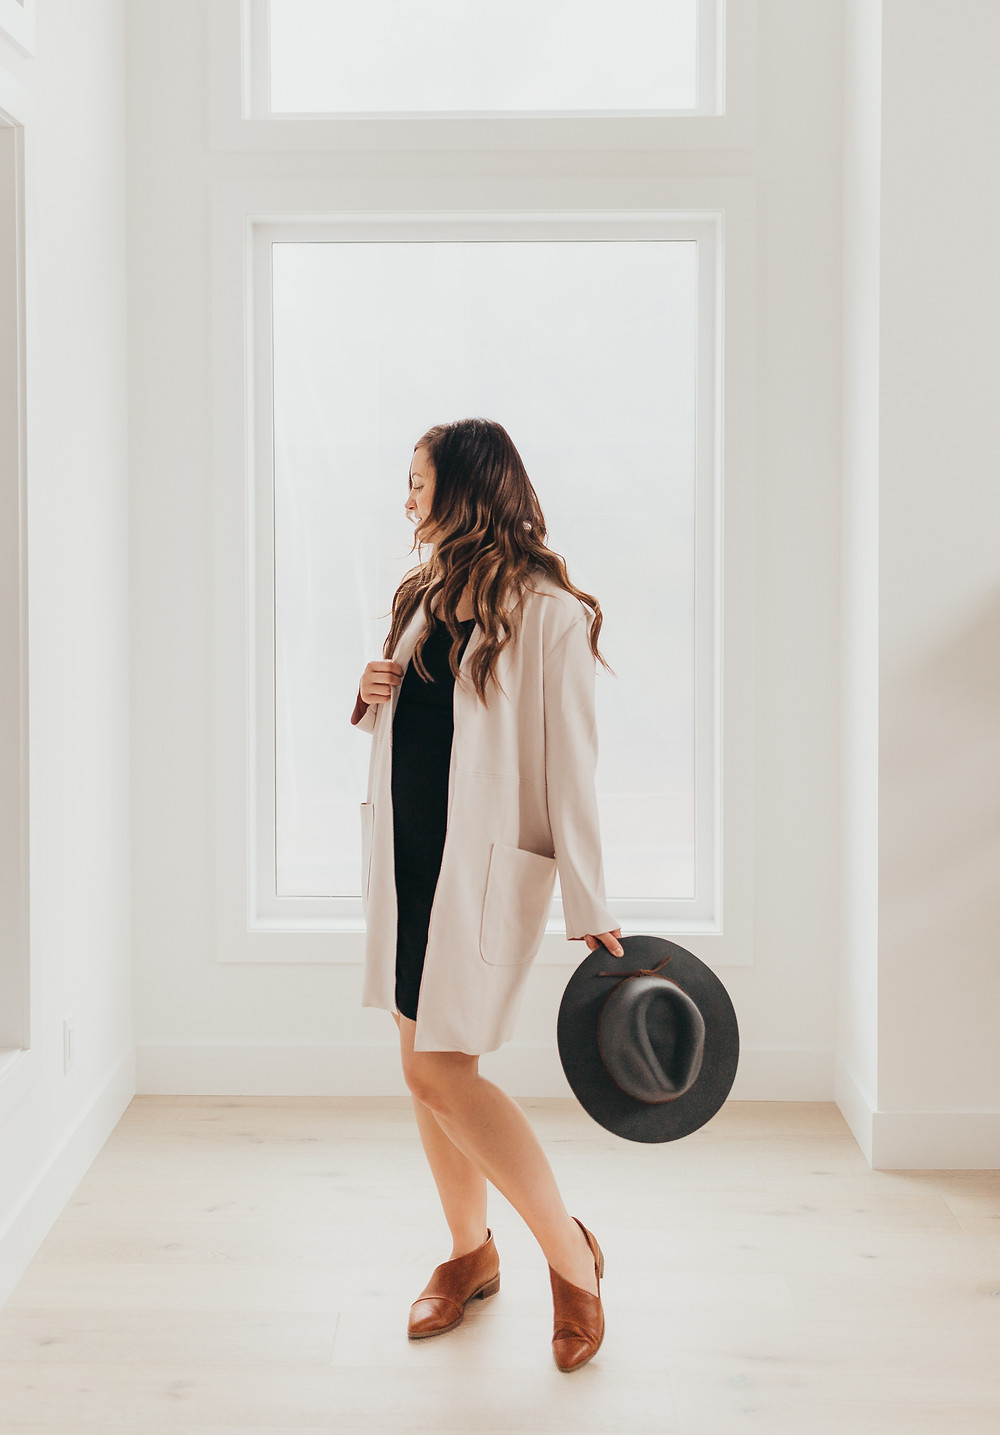 A girl is standing wearing an oversized nude coat holding a hat.